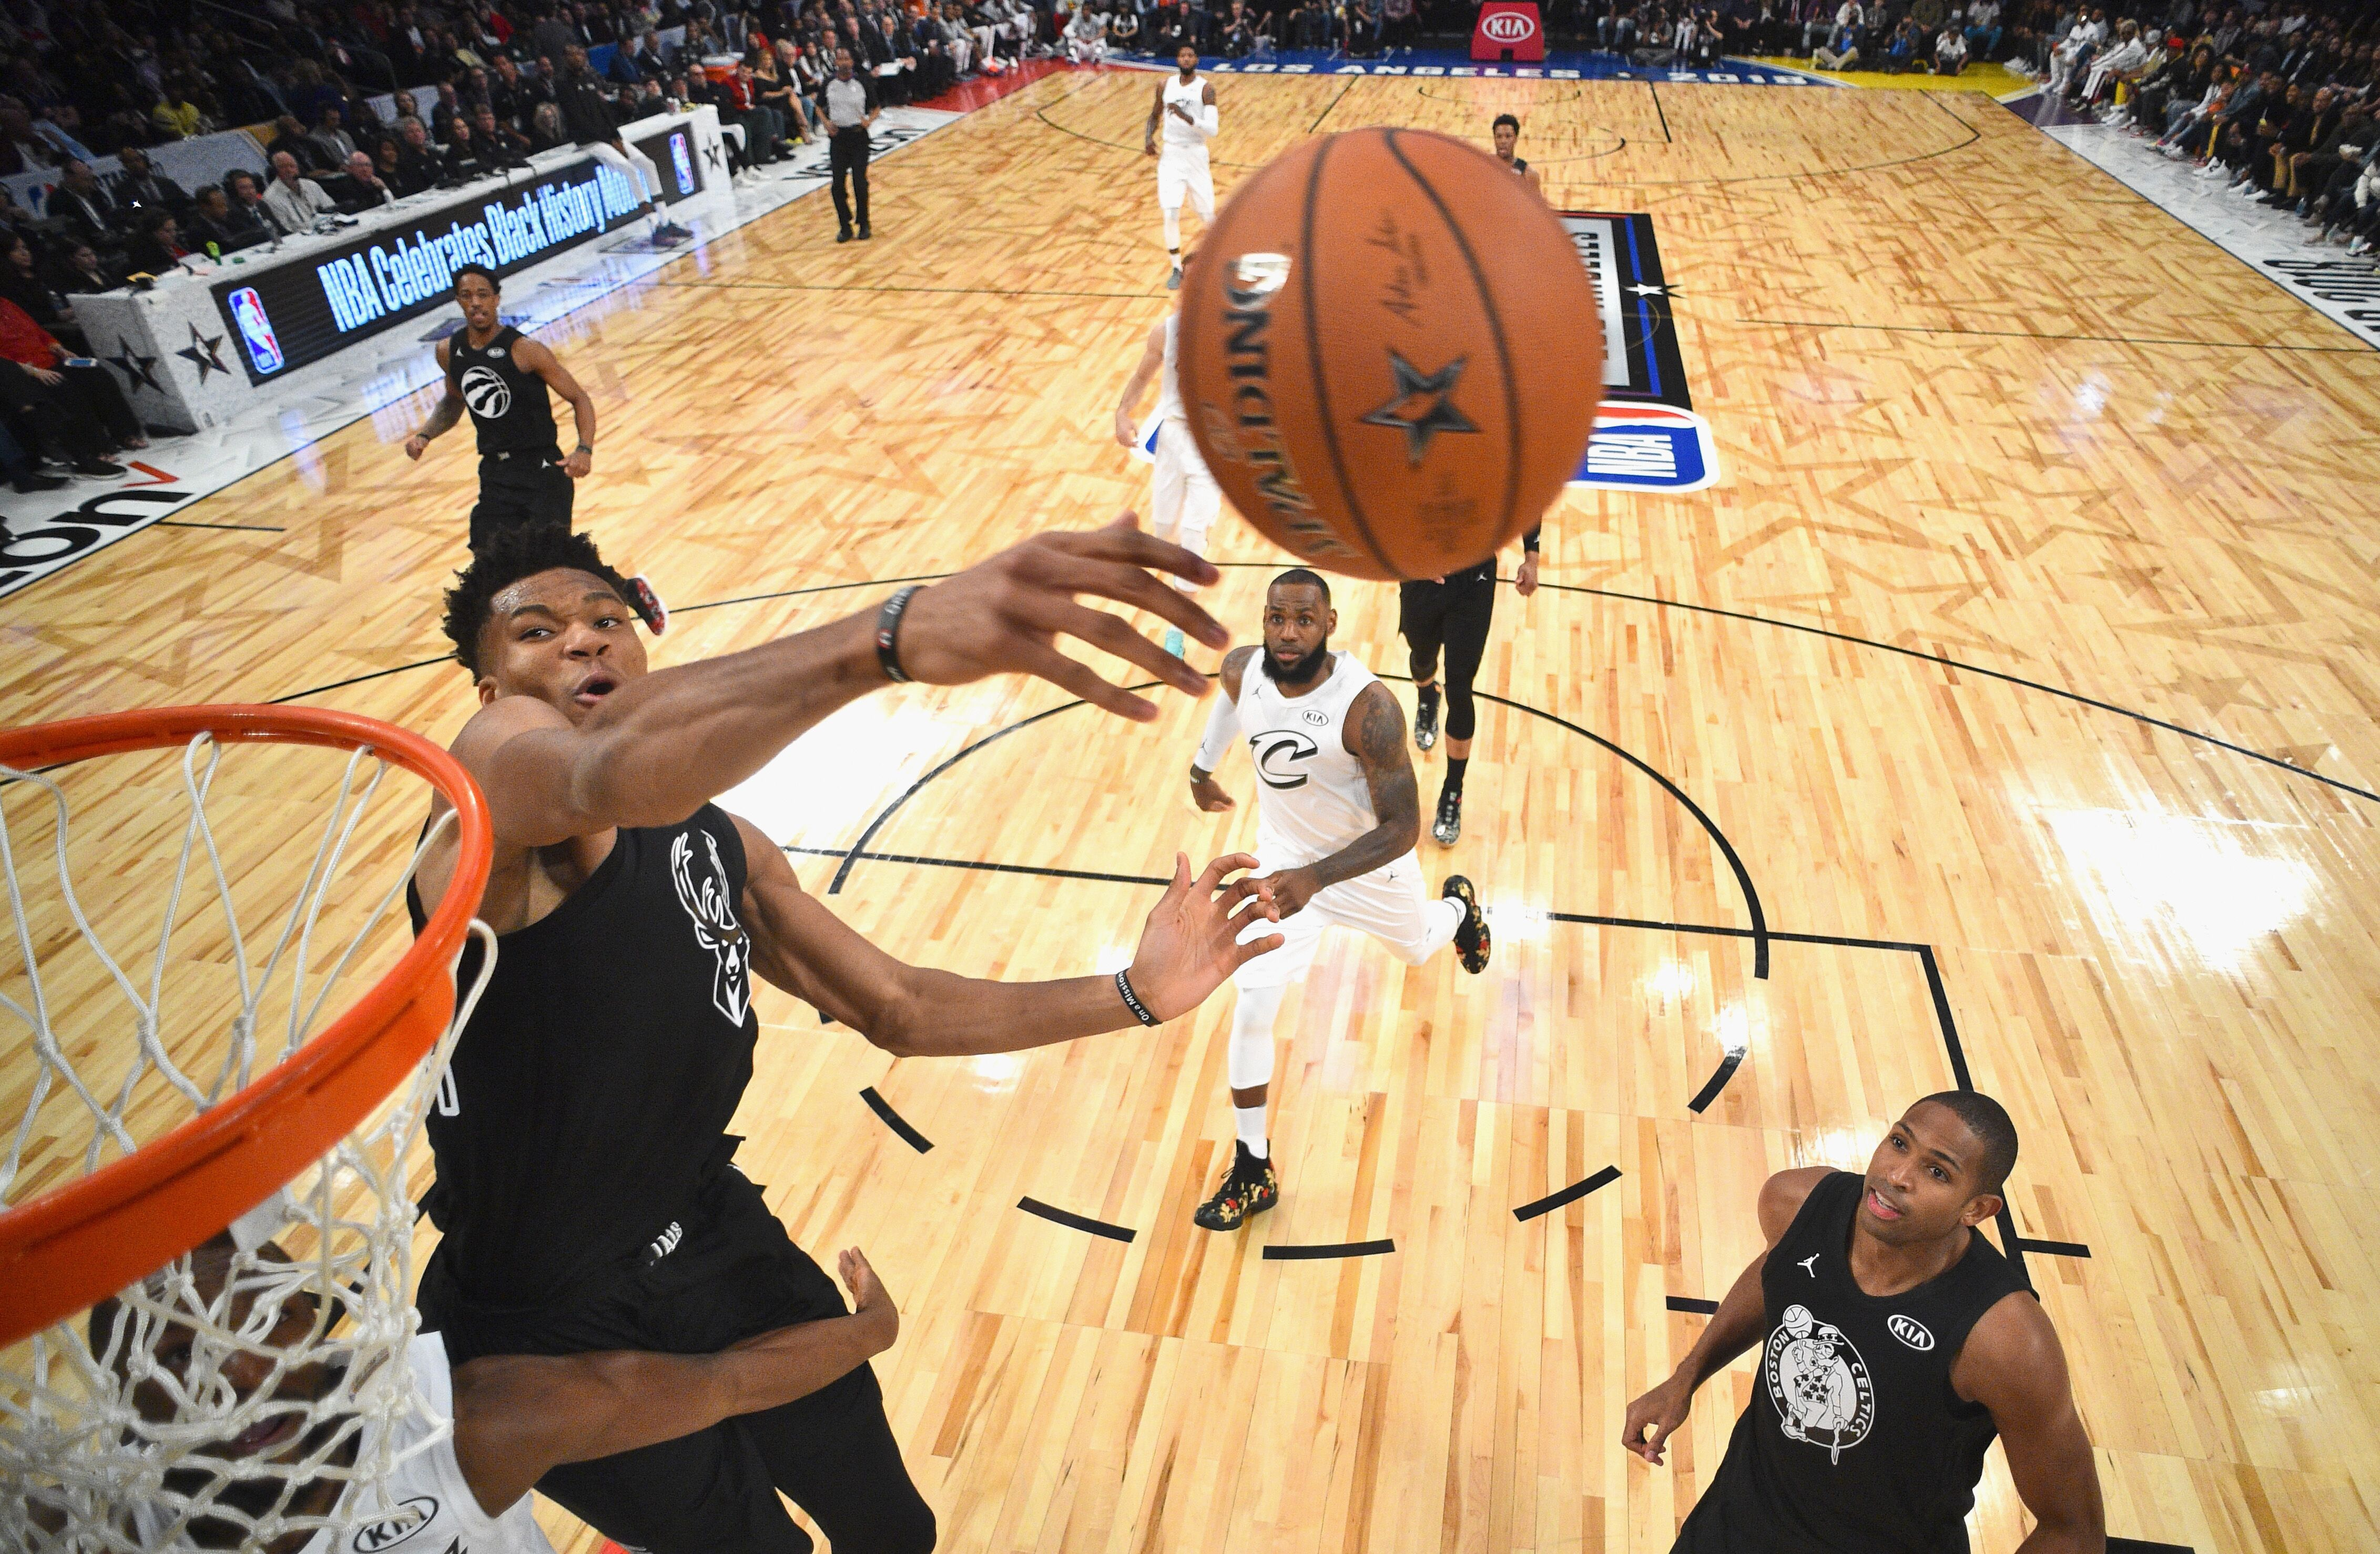 LOS ANGELES, CA - FEBRUARY 18: Giannis Antetokounmpo #34 of Team Stephen blocks a shot during the NBA All-Star Game 2018 at Staples Center on February 18, 2018 in Los Angeles, California. (Photo by Pool/Getty Images)